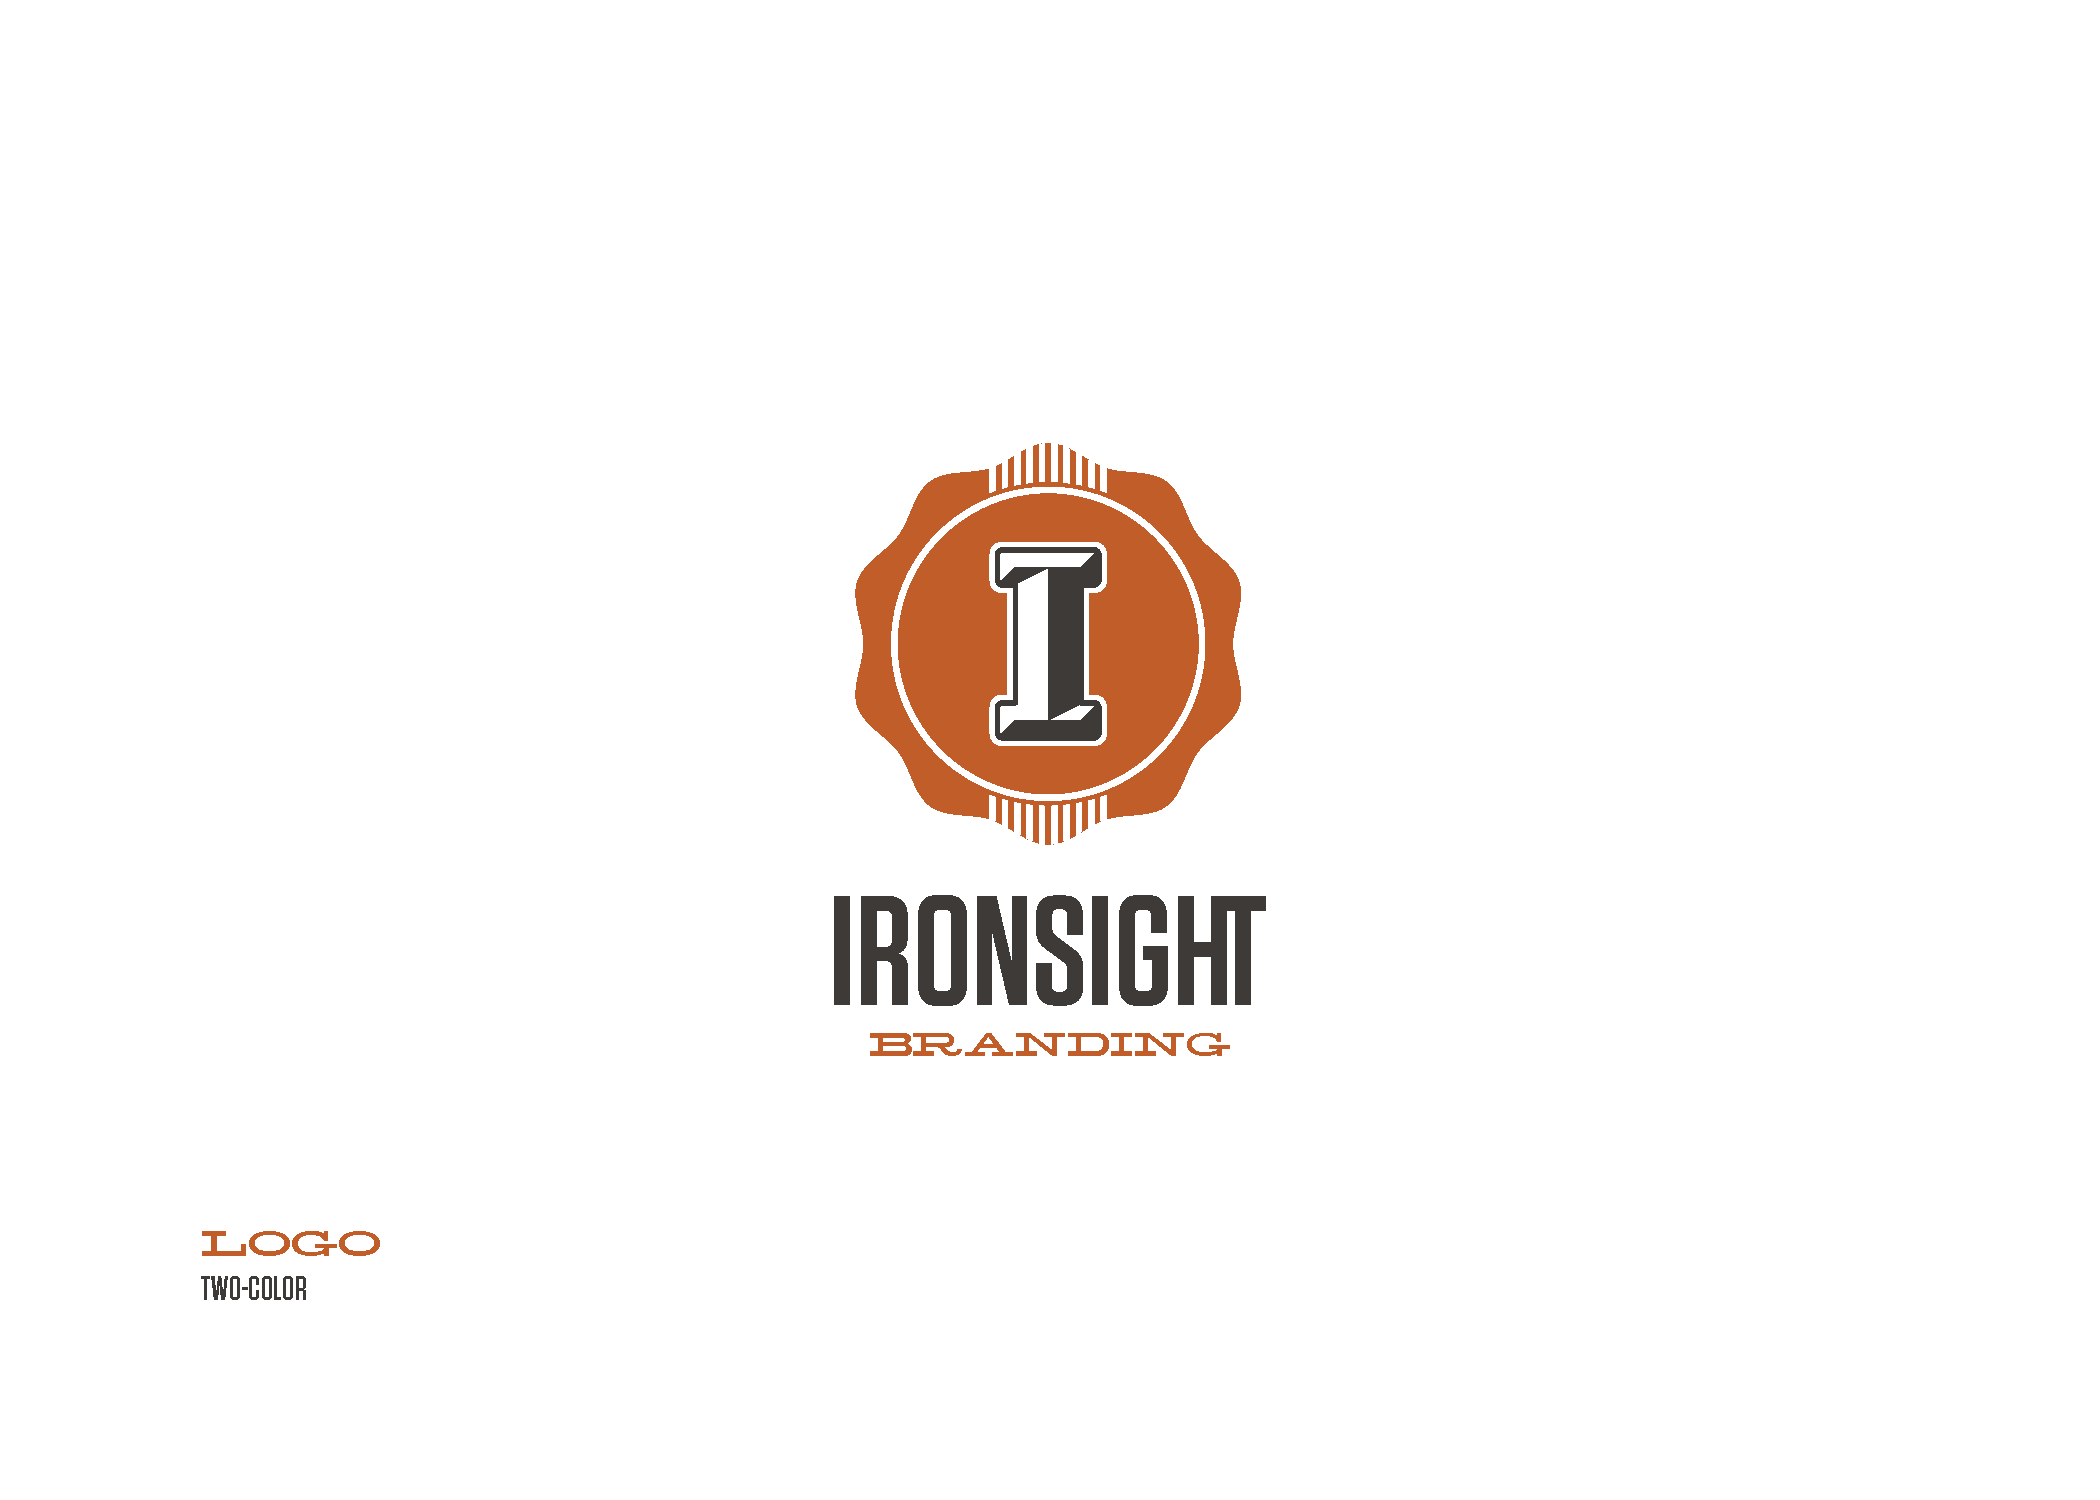 ironsight_branding copy_Page_09.png